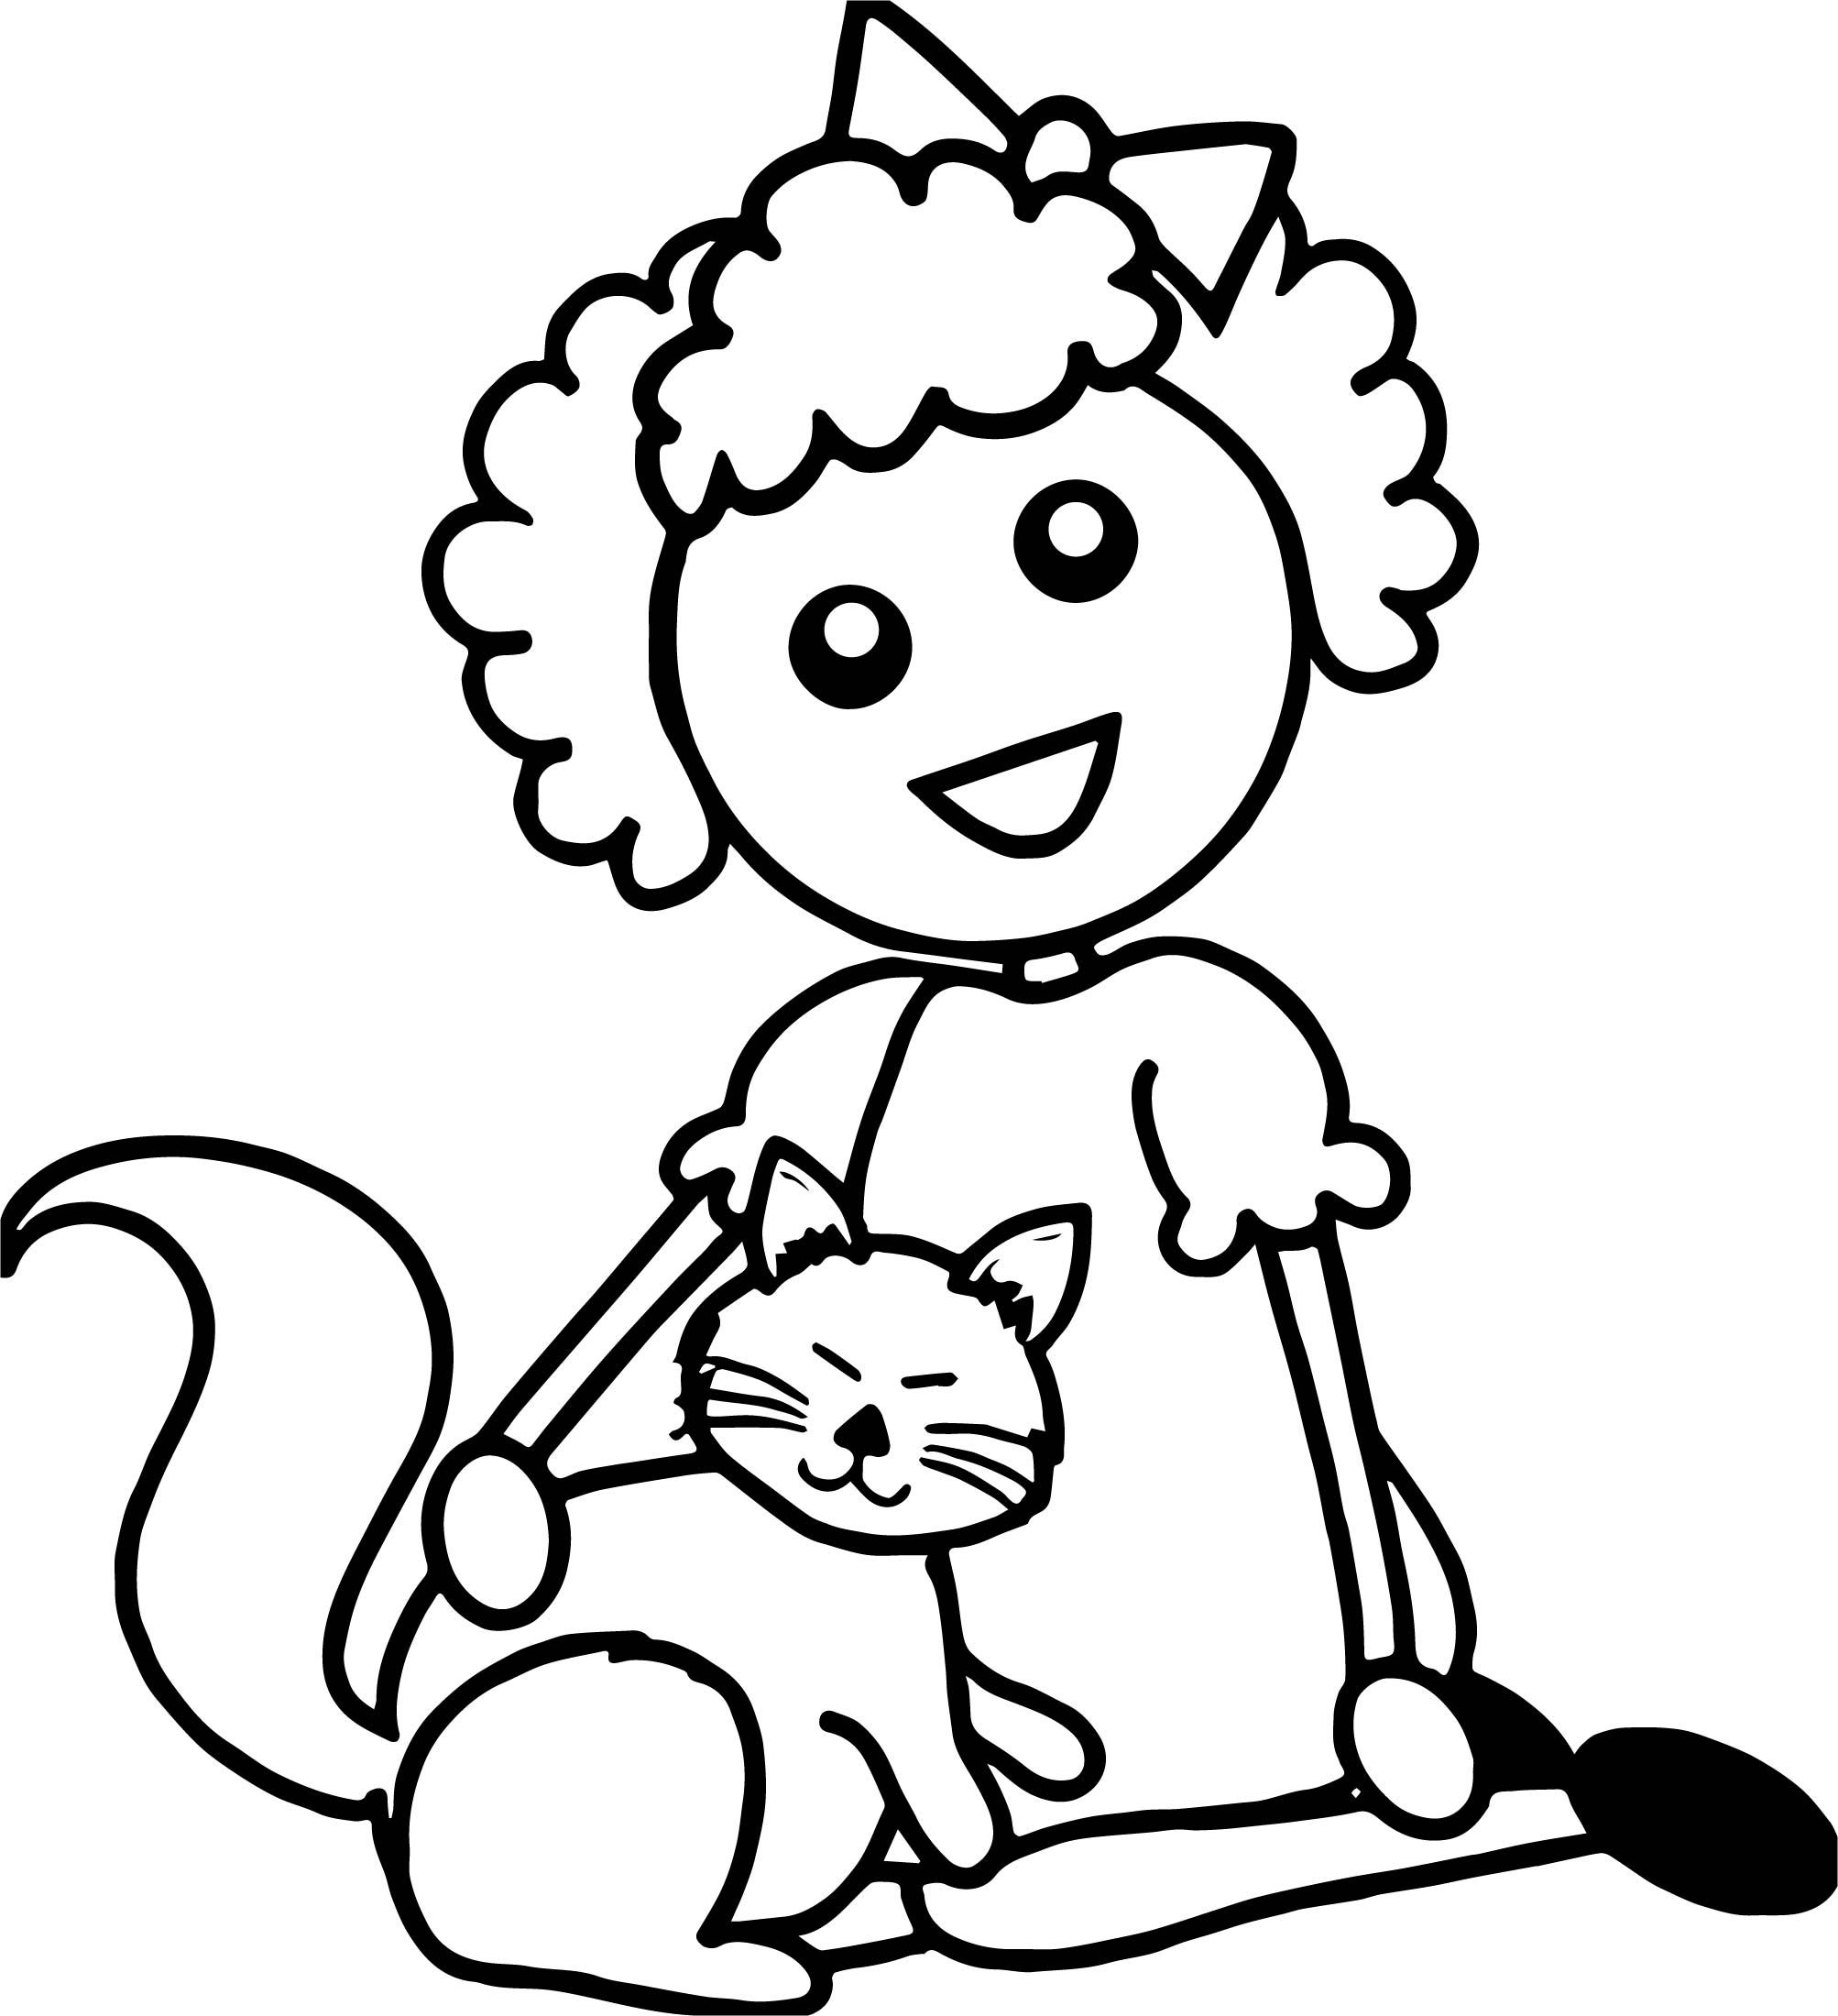 Cool Haired Cartoon Girl Sitting With Her Cat Coloring Page With